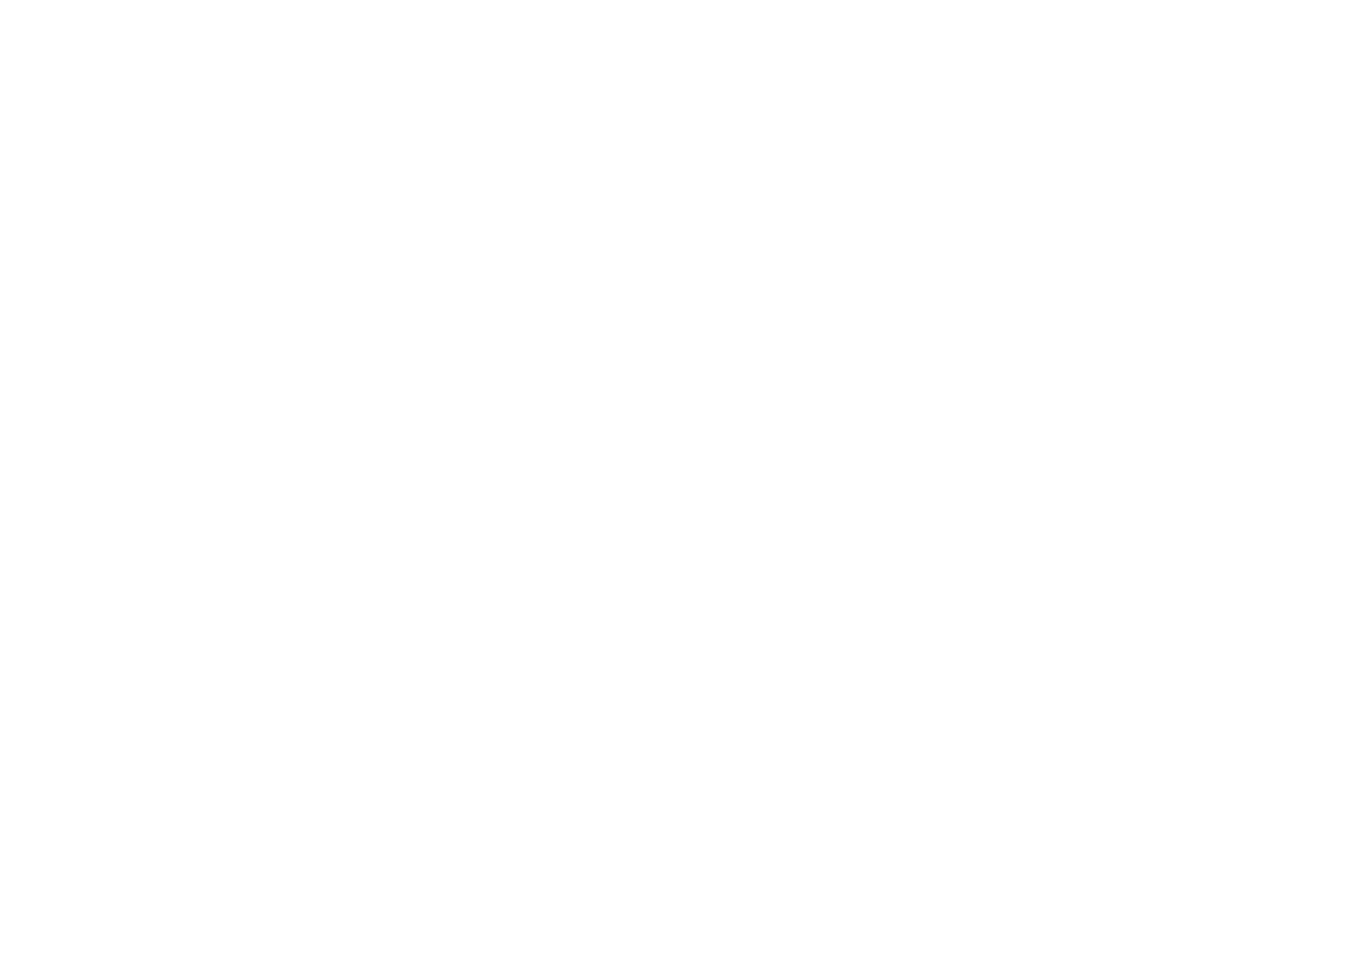 MYBELONGING - High Fashion, Menswear Streetstyle Meets Food, Travel and Editorial Experiences.